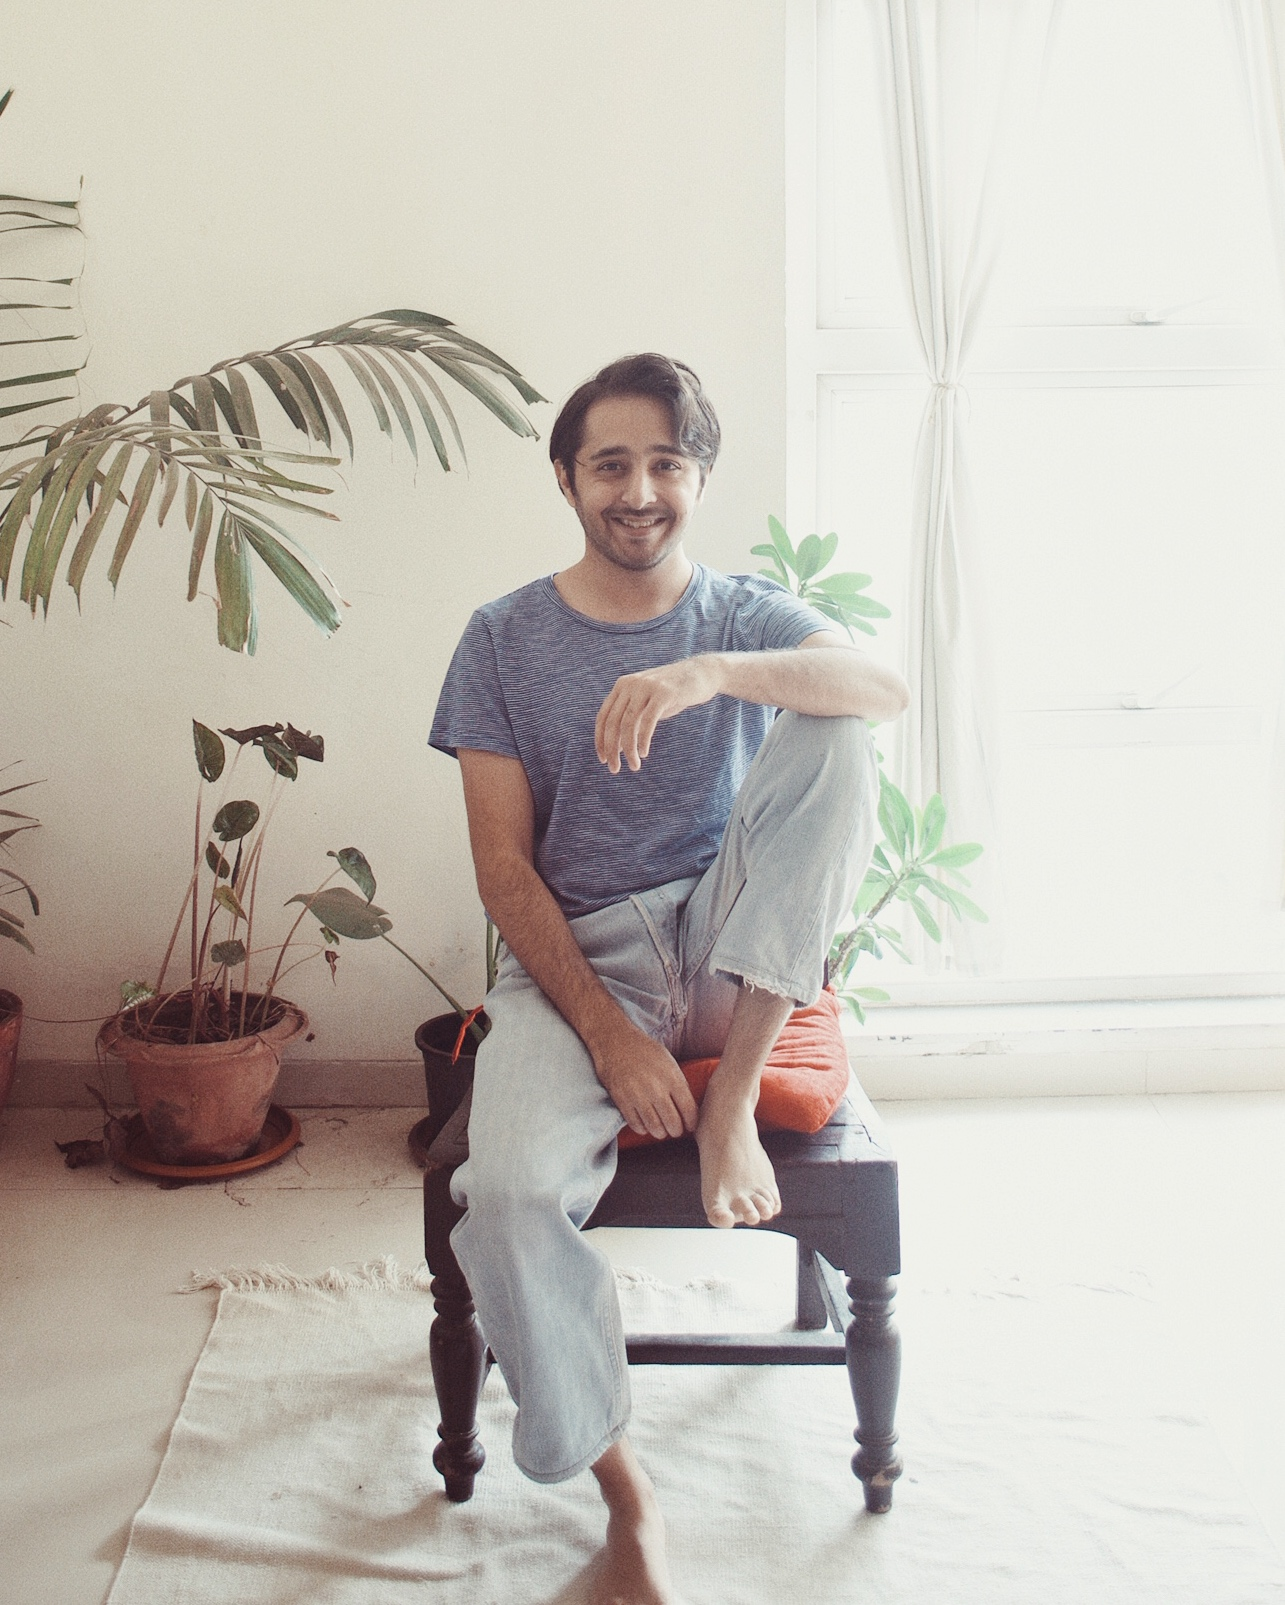 Madhur - My name is Madhur and I write a blog about sustainable and conscious living called